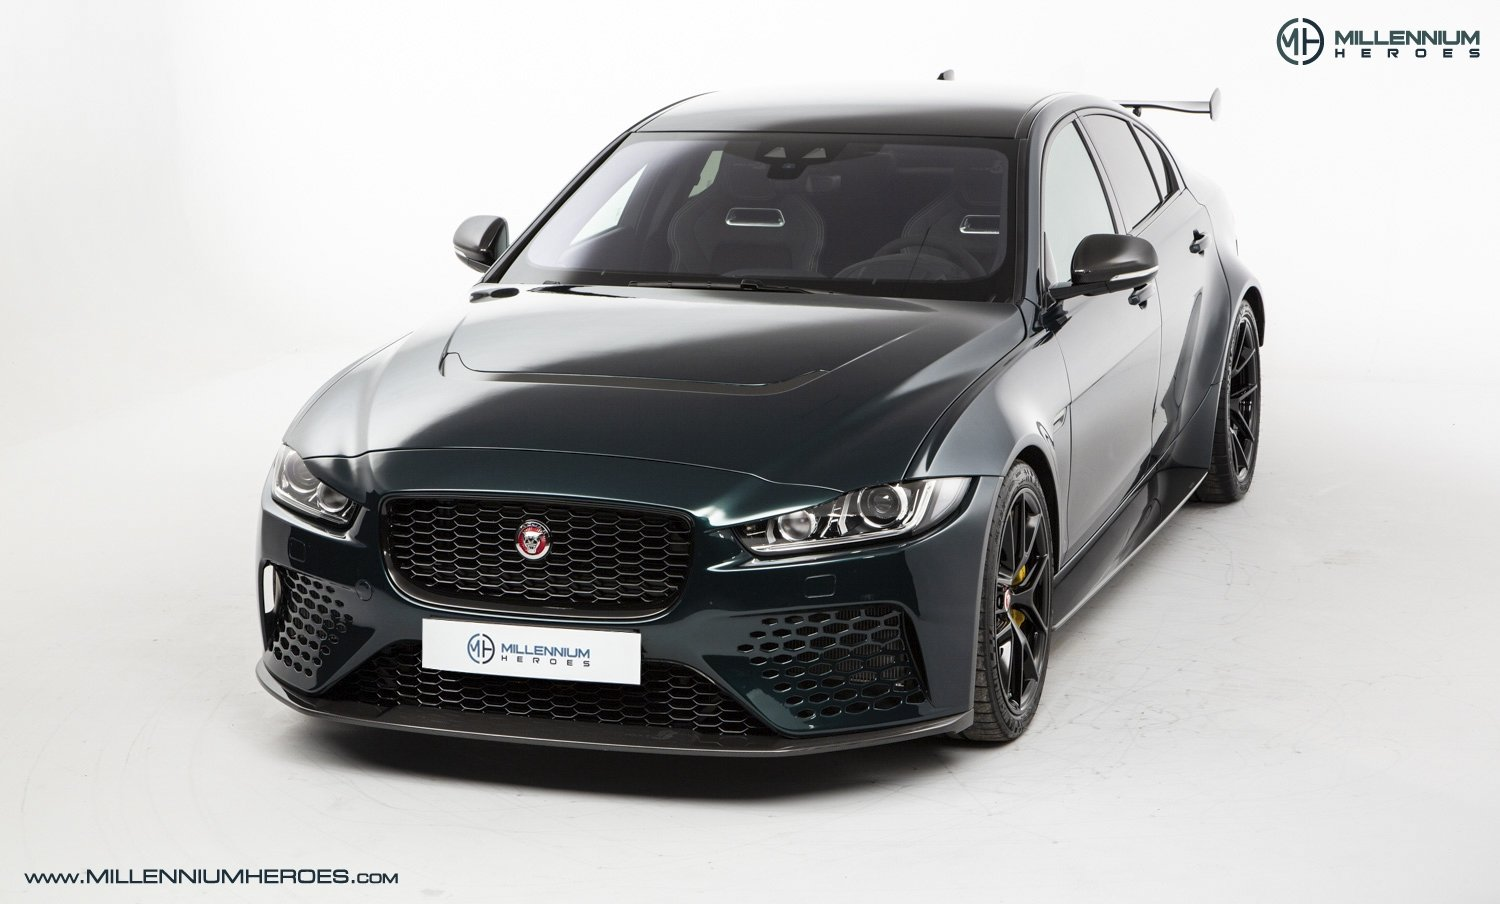 2019 JAGUAR XE SV PROJECT 8 // 1 OF 300 // 1K MILES // 1 OWNER  For Sale (picture 2 of 24)